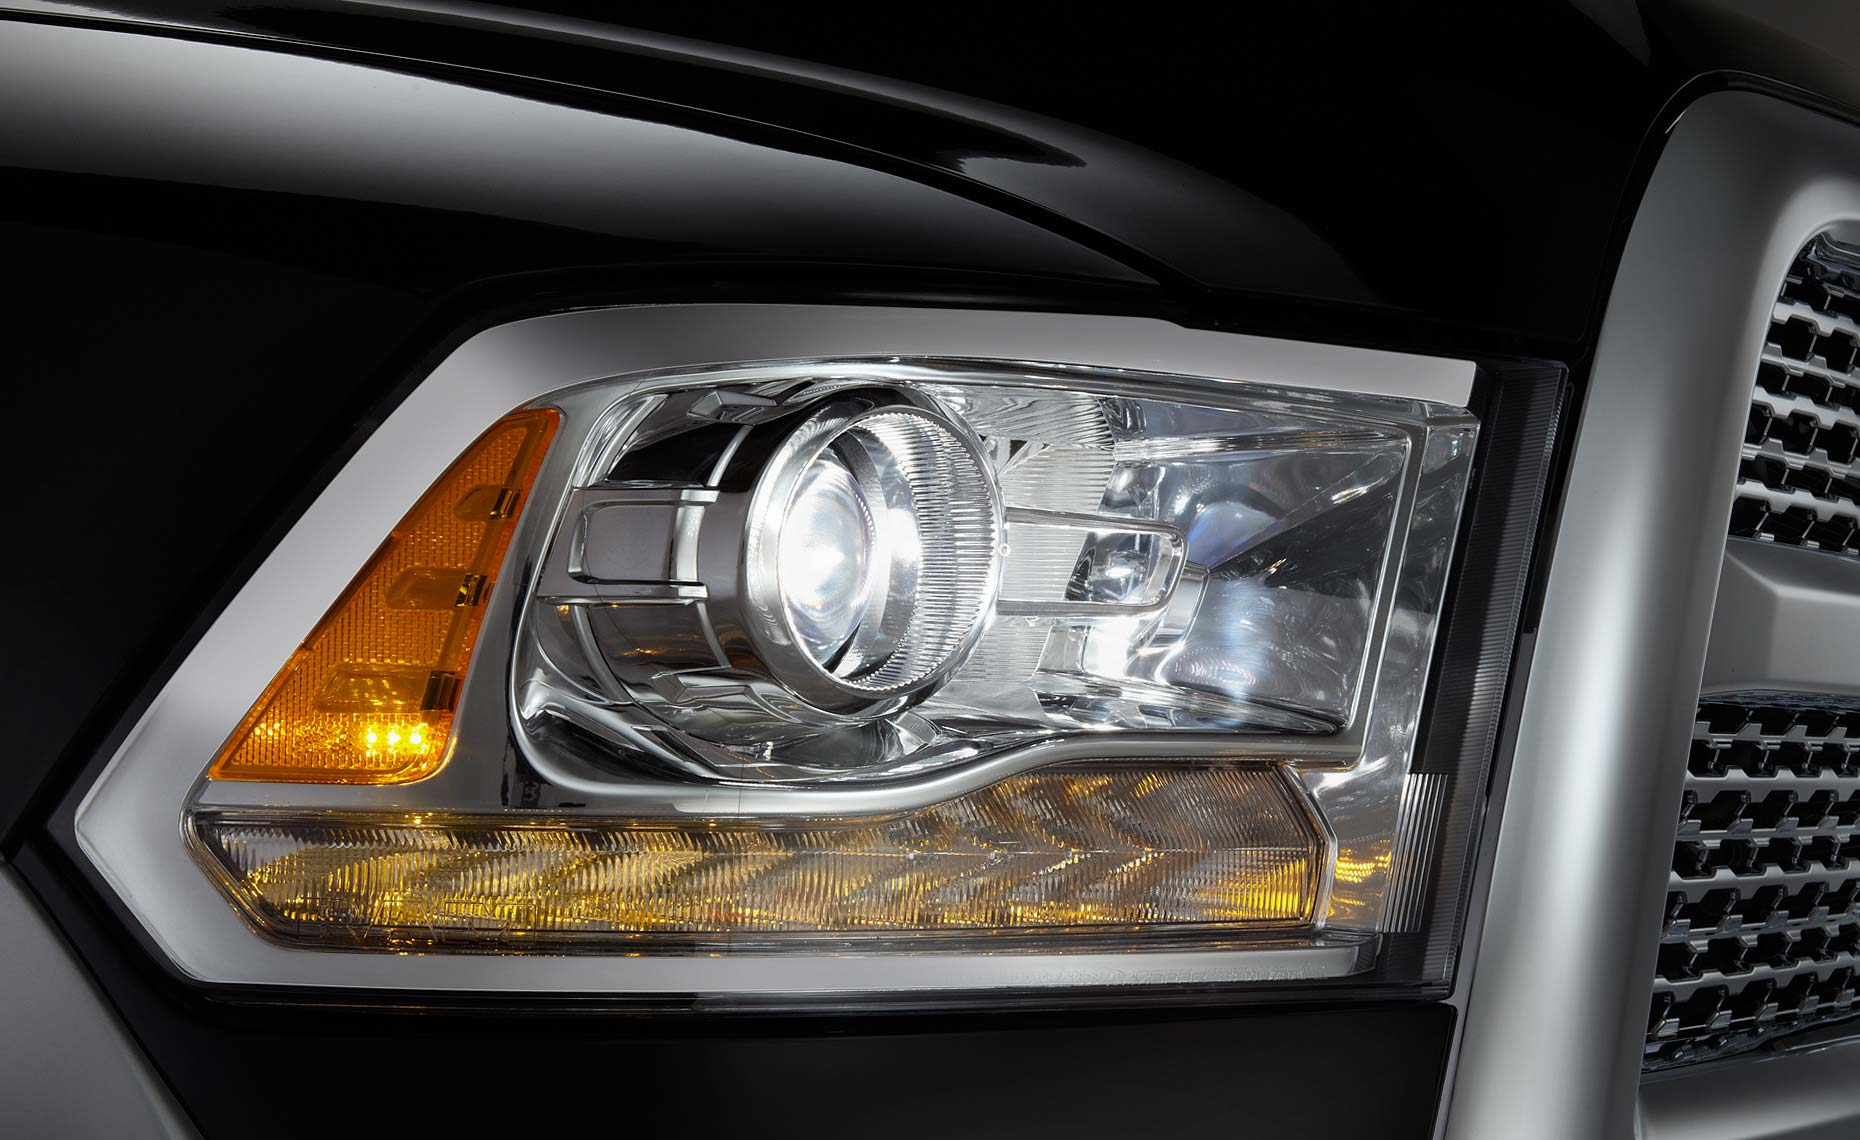 2013 RAM truck-2500HD-headlight-detail.jpg